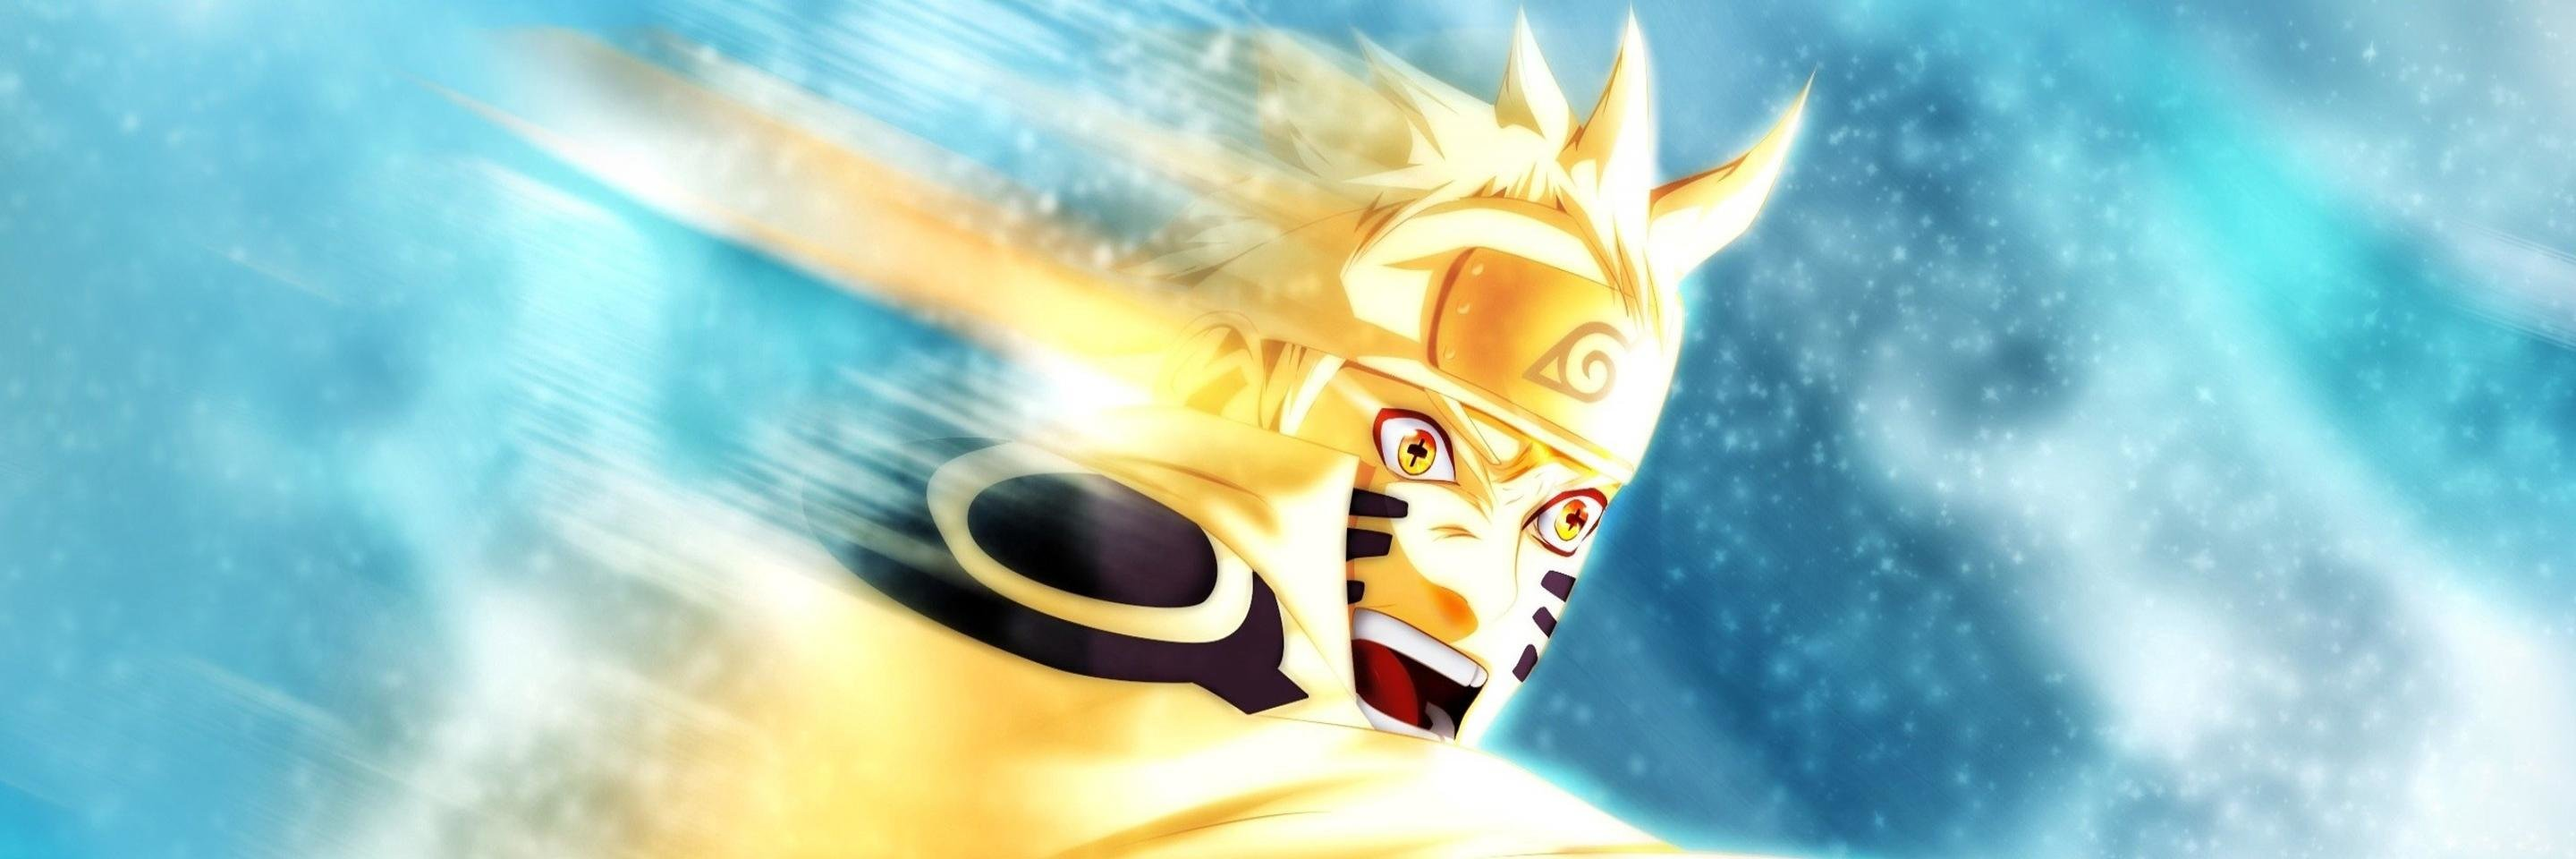 Free download Naruto Uzumaki background ID:395816 dual screen 2880x960 for PC